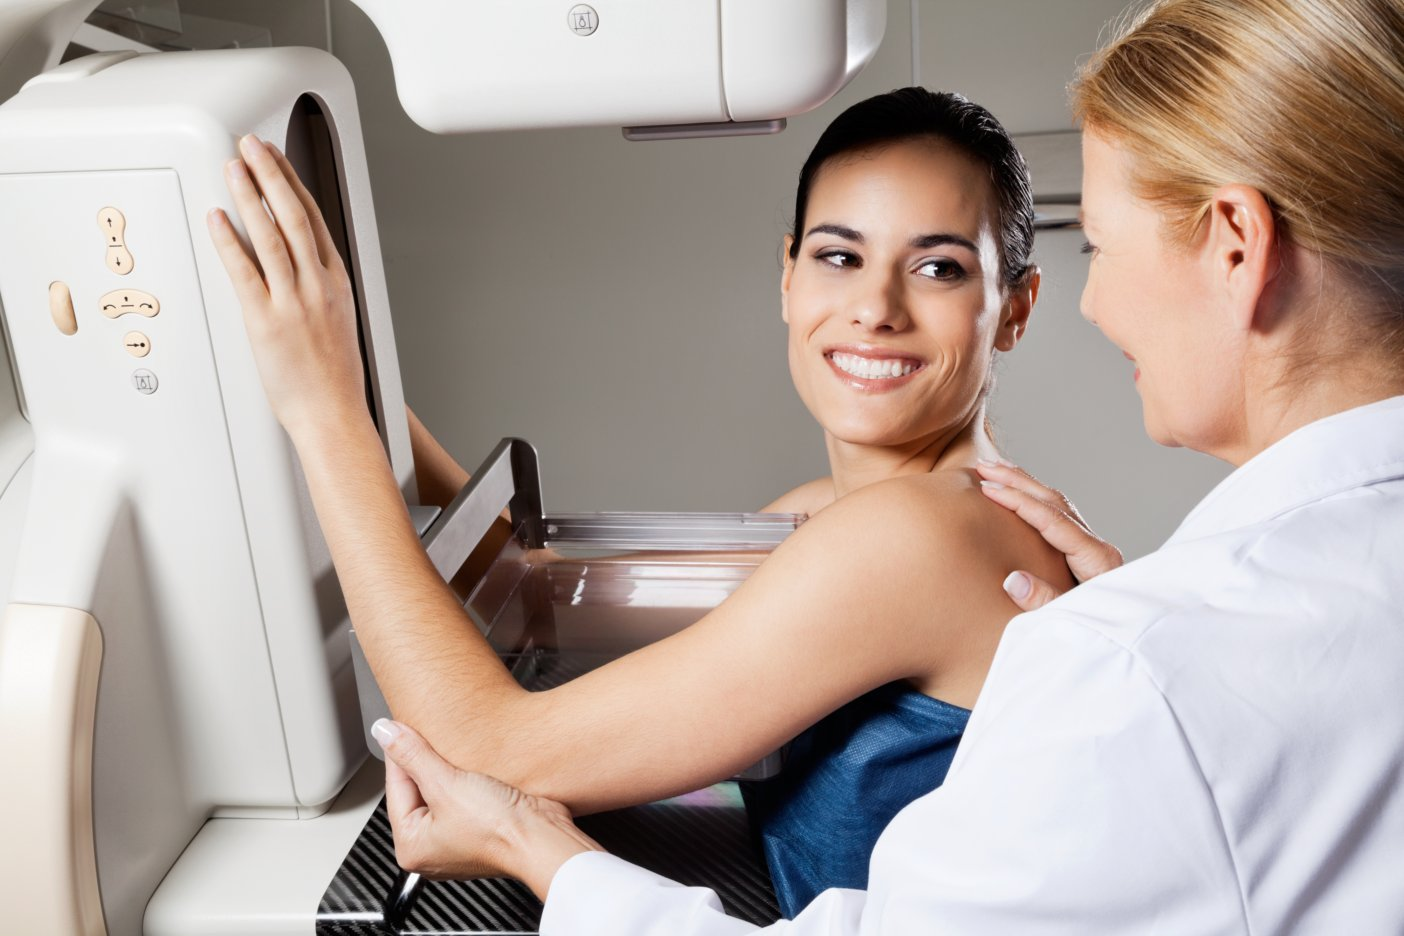 Practitioner doing a mammogram for a patient